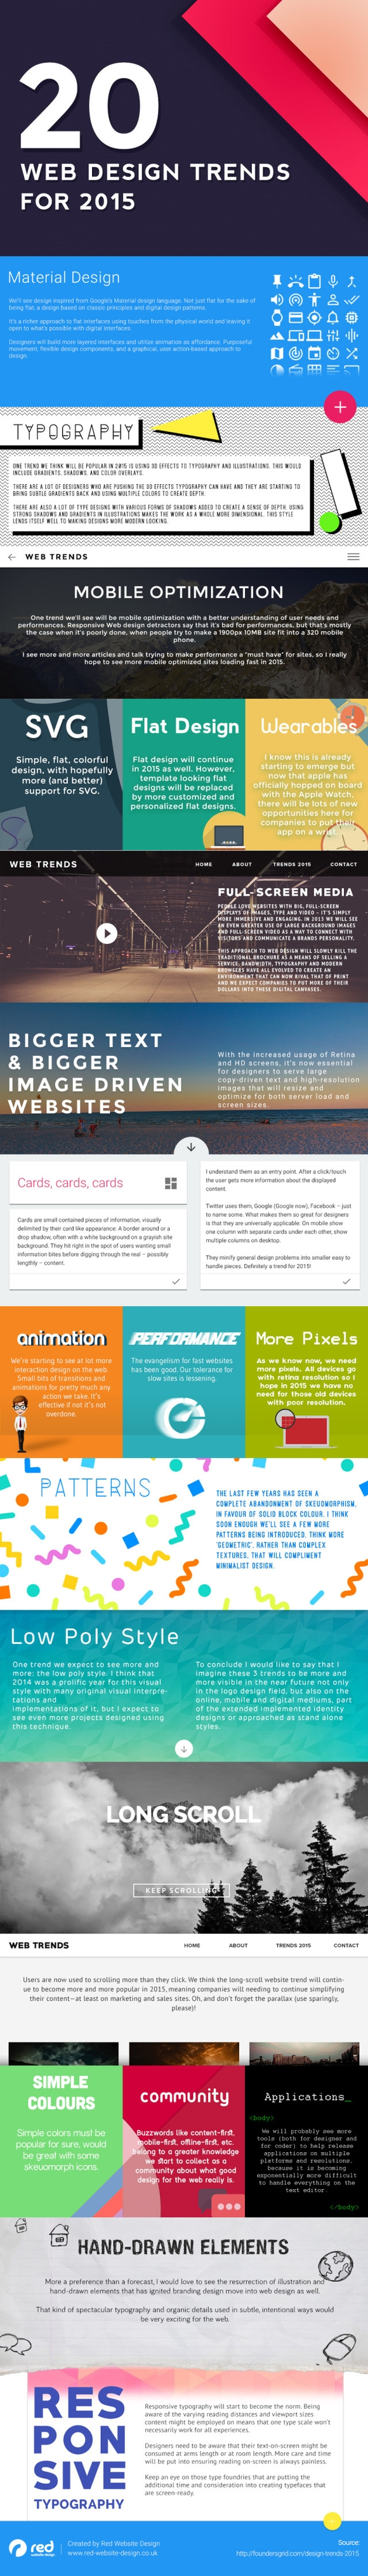 20 Web Design Trends For 2016 - Fresh Web Design Infographics 2016